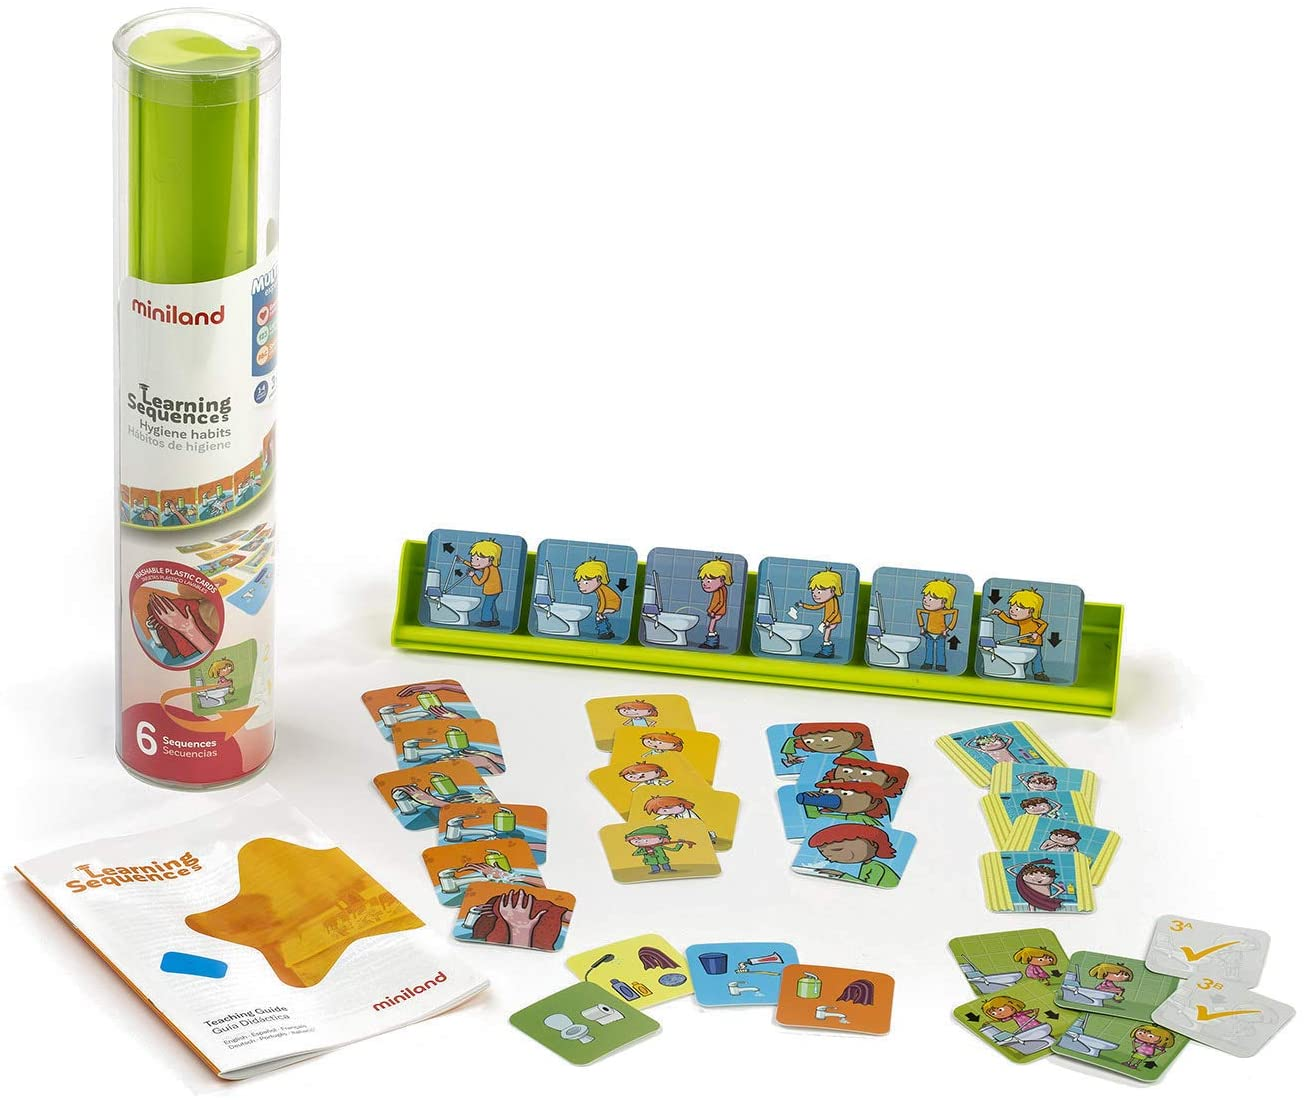 Miniland Educational - Learning Sequences: Hygiene Habits Playset